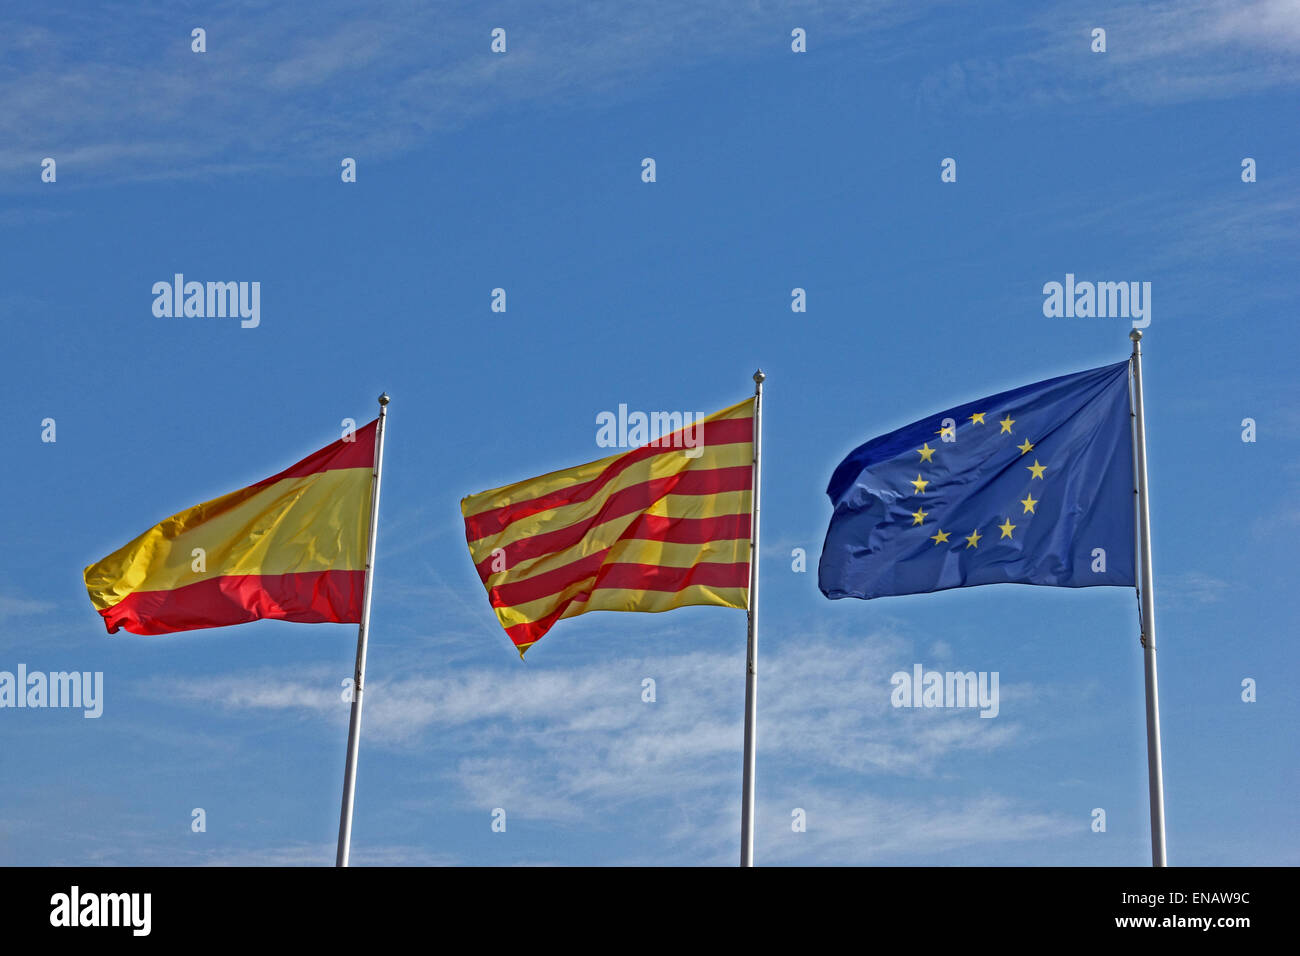 Catalan, Spanish and European Union flags. - Stock Image